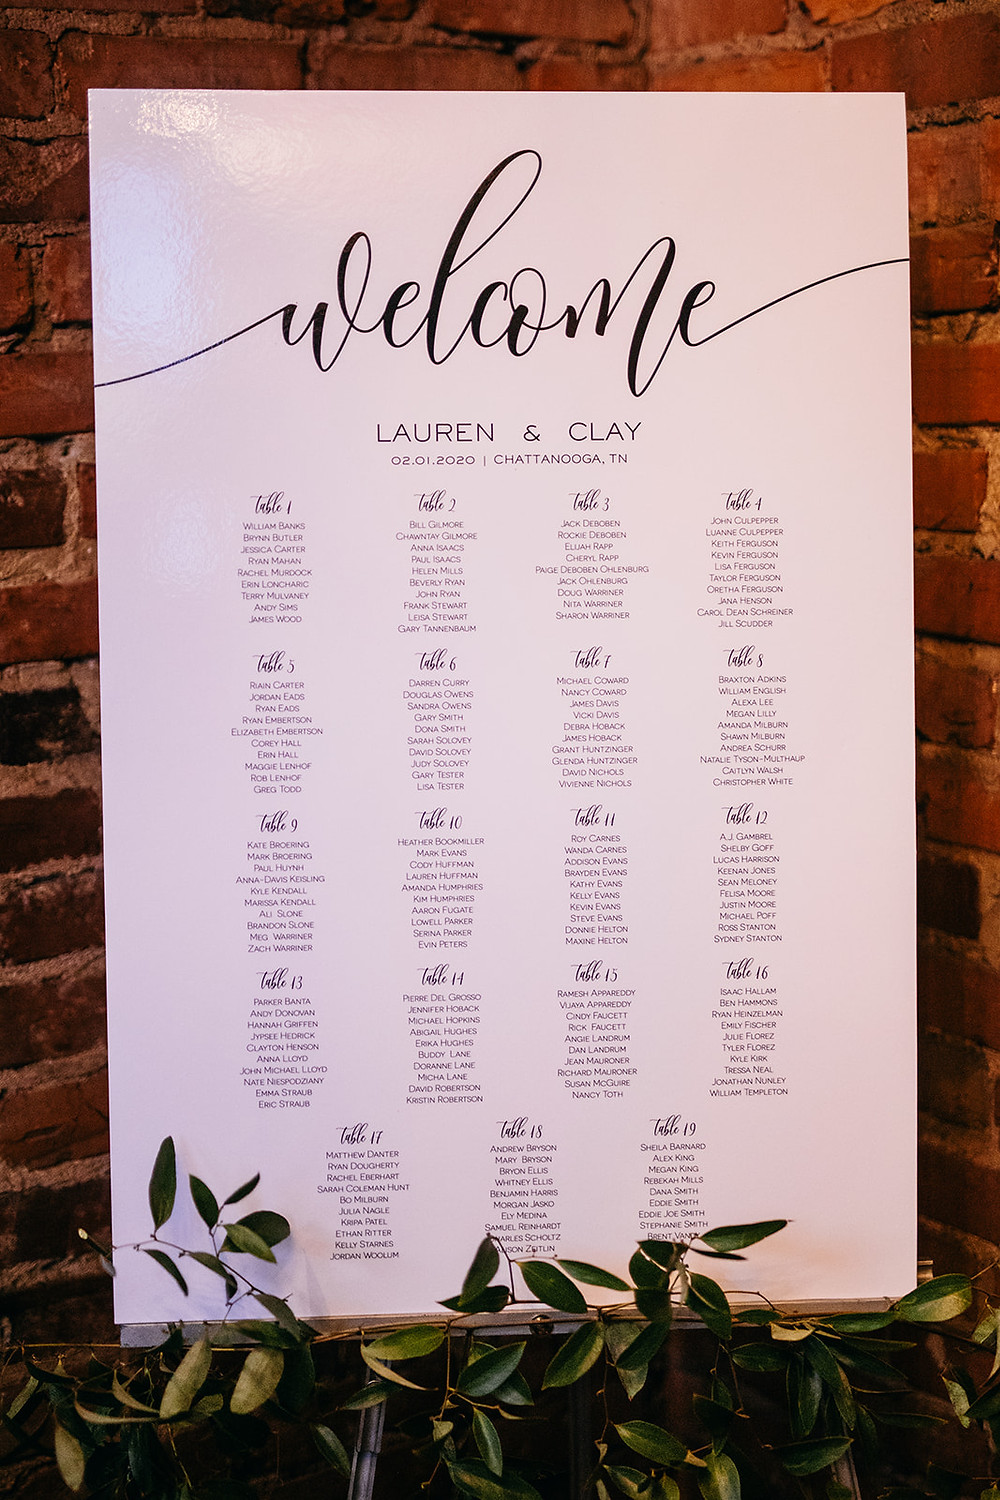 Wedding Seating Chart Traditional Style |www.weddingvenue-tn.com Our Ampersand Photography |Chattanooga TN